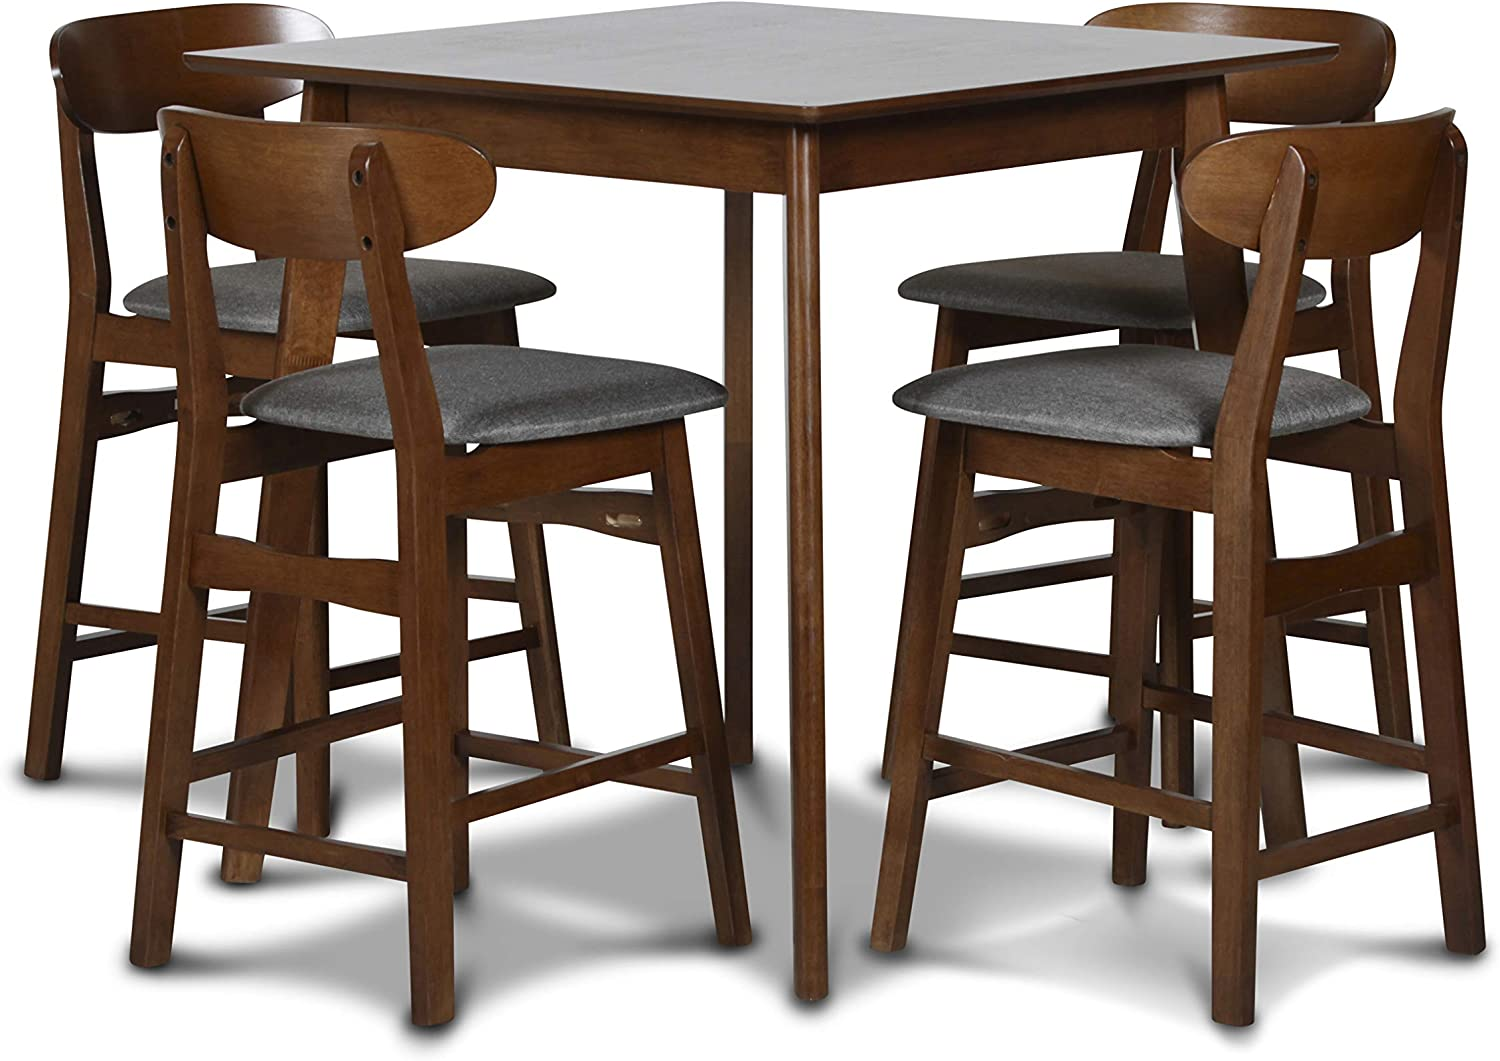 New Classic Furniture Morocco Dining Room Table Sets, 5-Piece Counter, Dark Gray